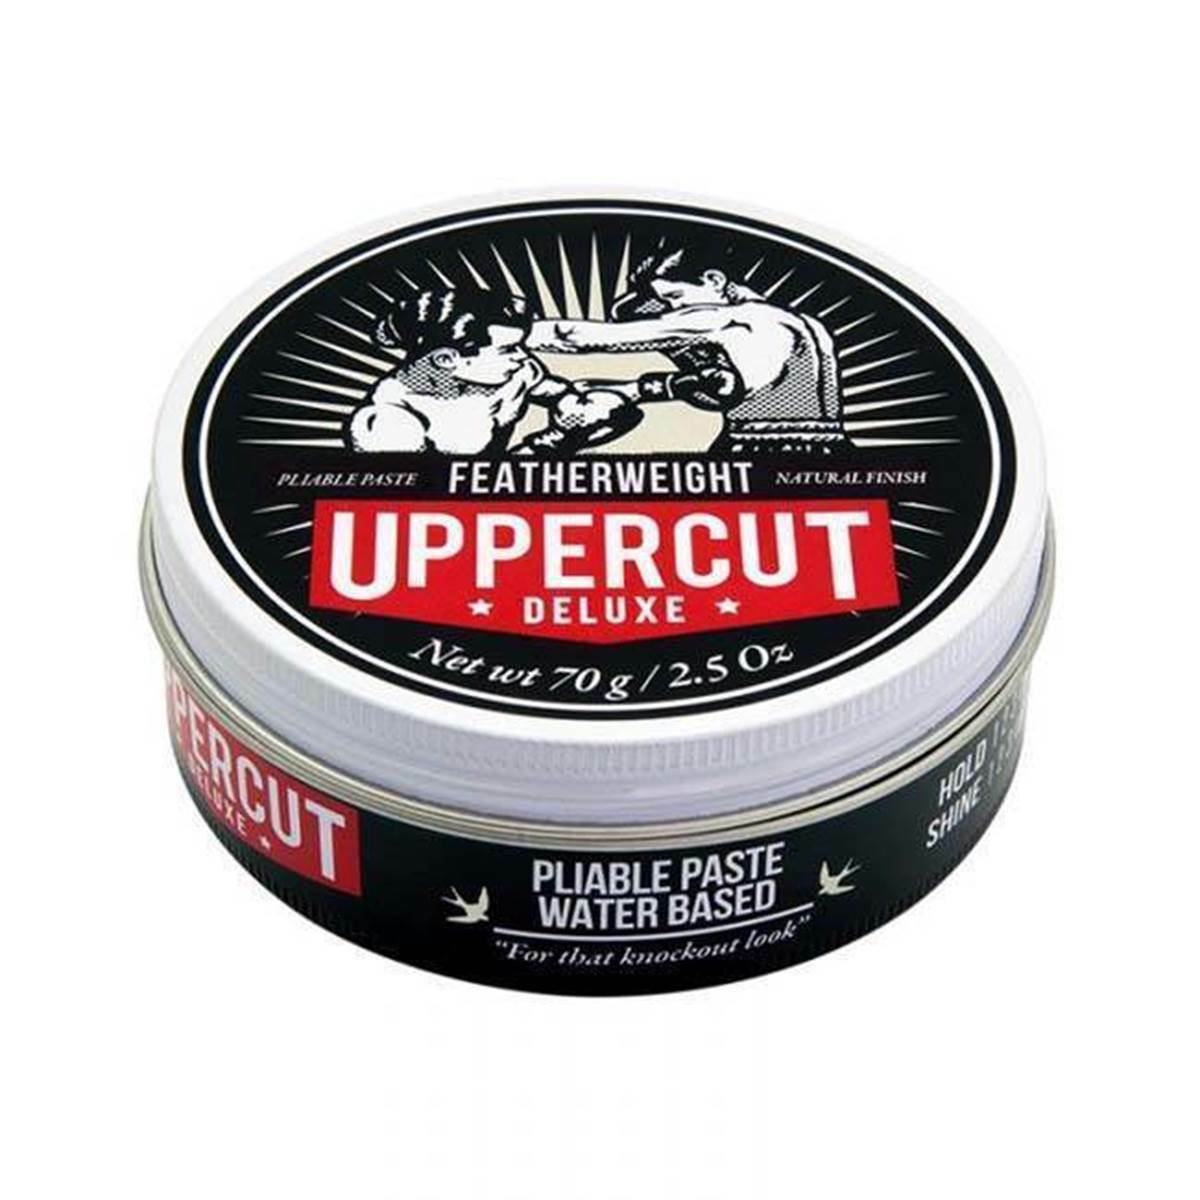 Picture of Uppercut Deluxe Featherweight